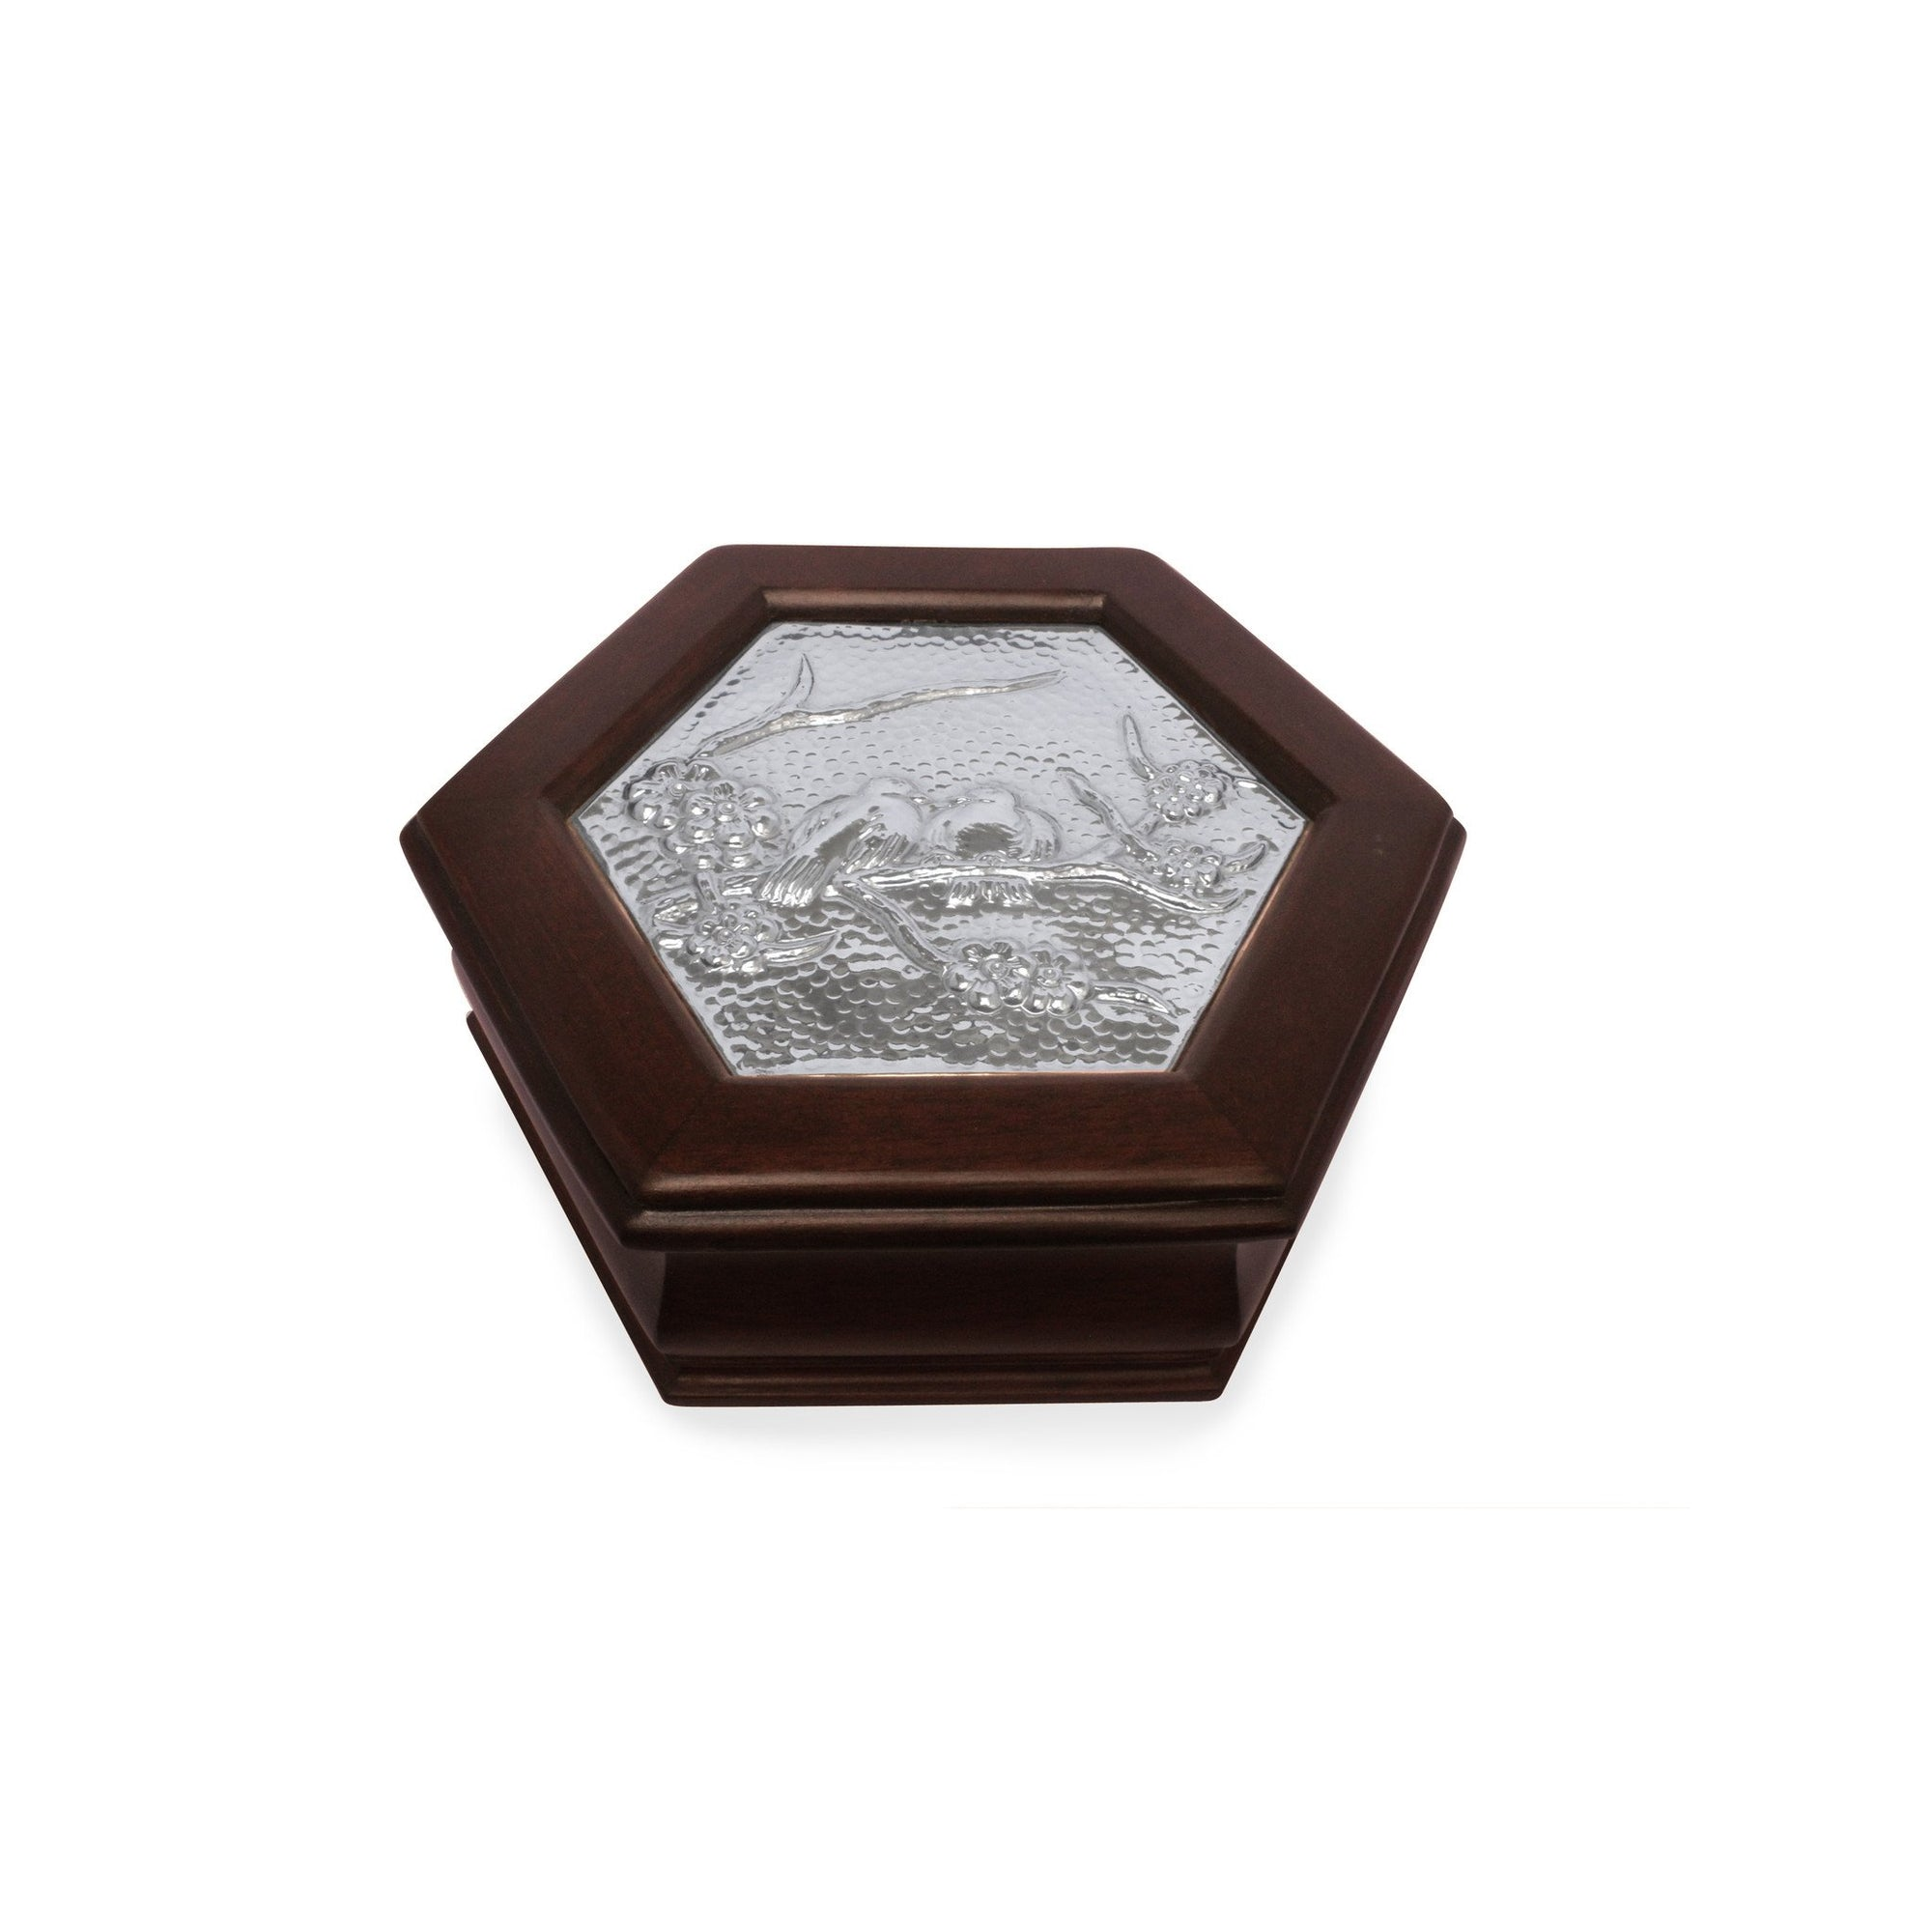 Hexagonal Keepsake Box with Sterling Silver Love Doves - Qinti - The Peruvian Shop